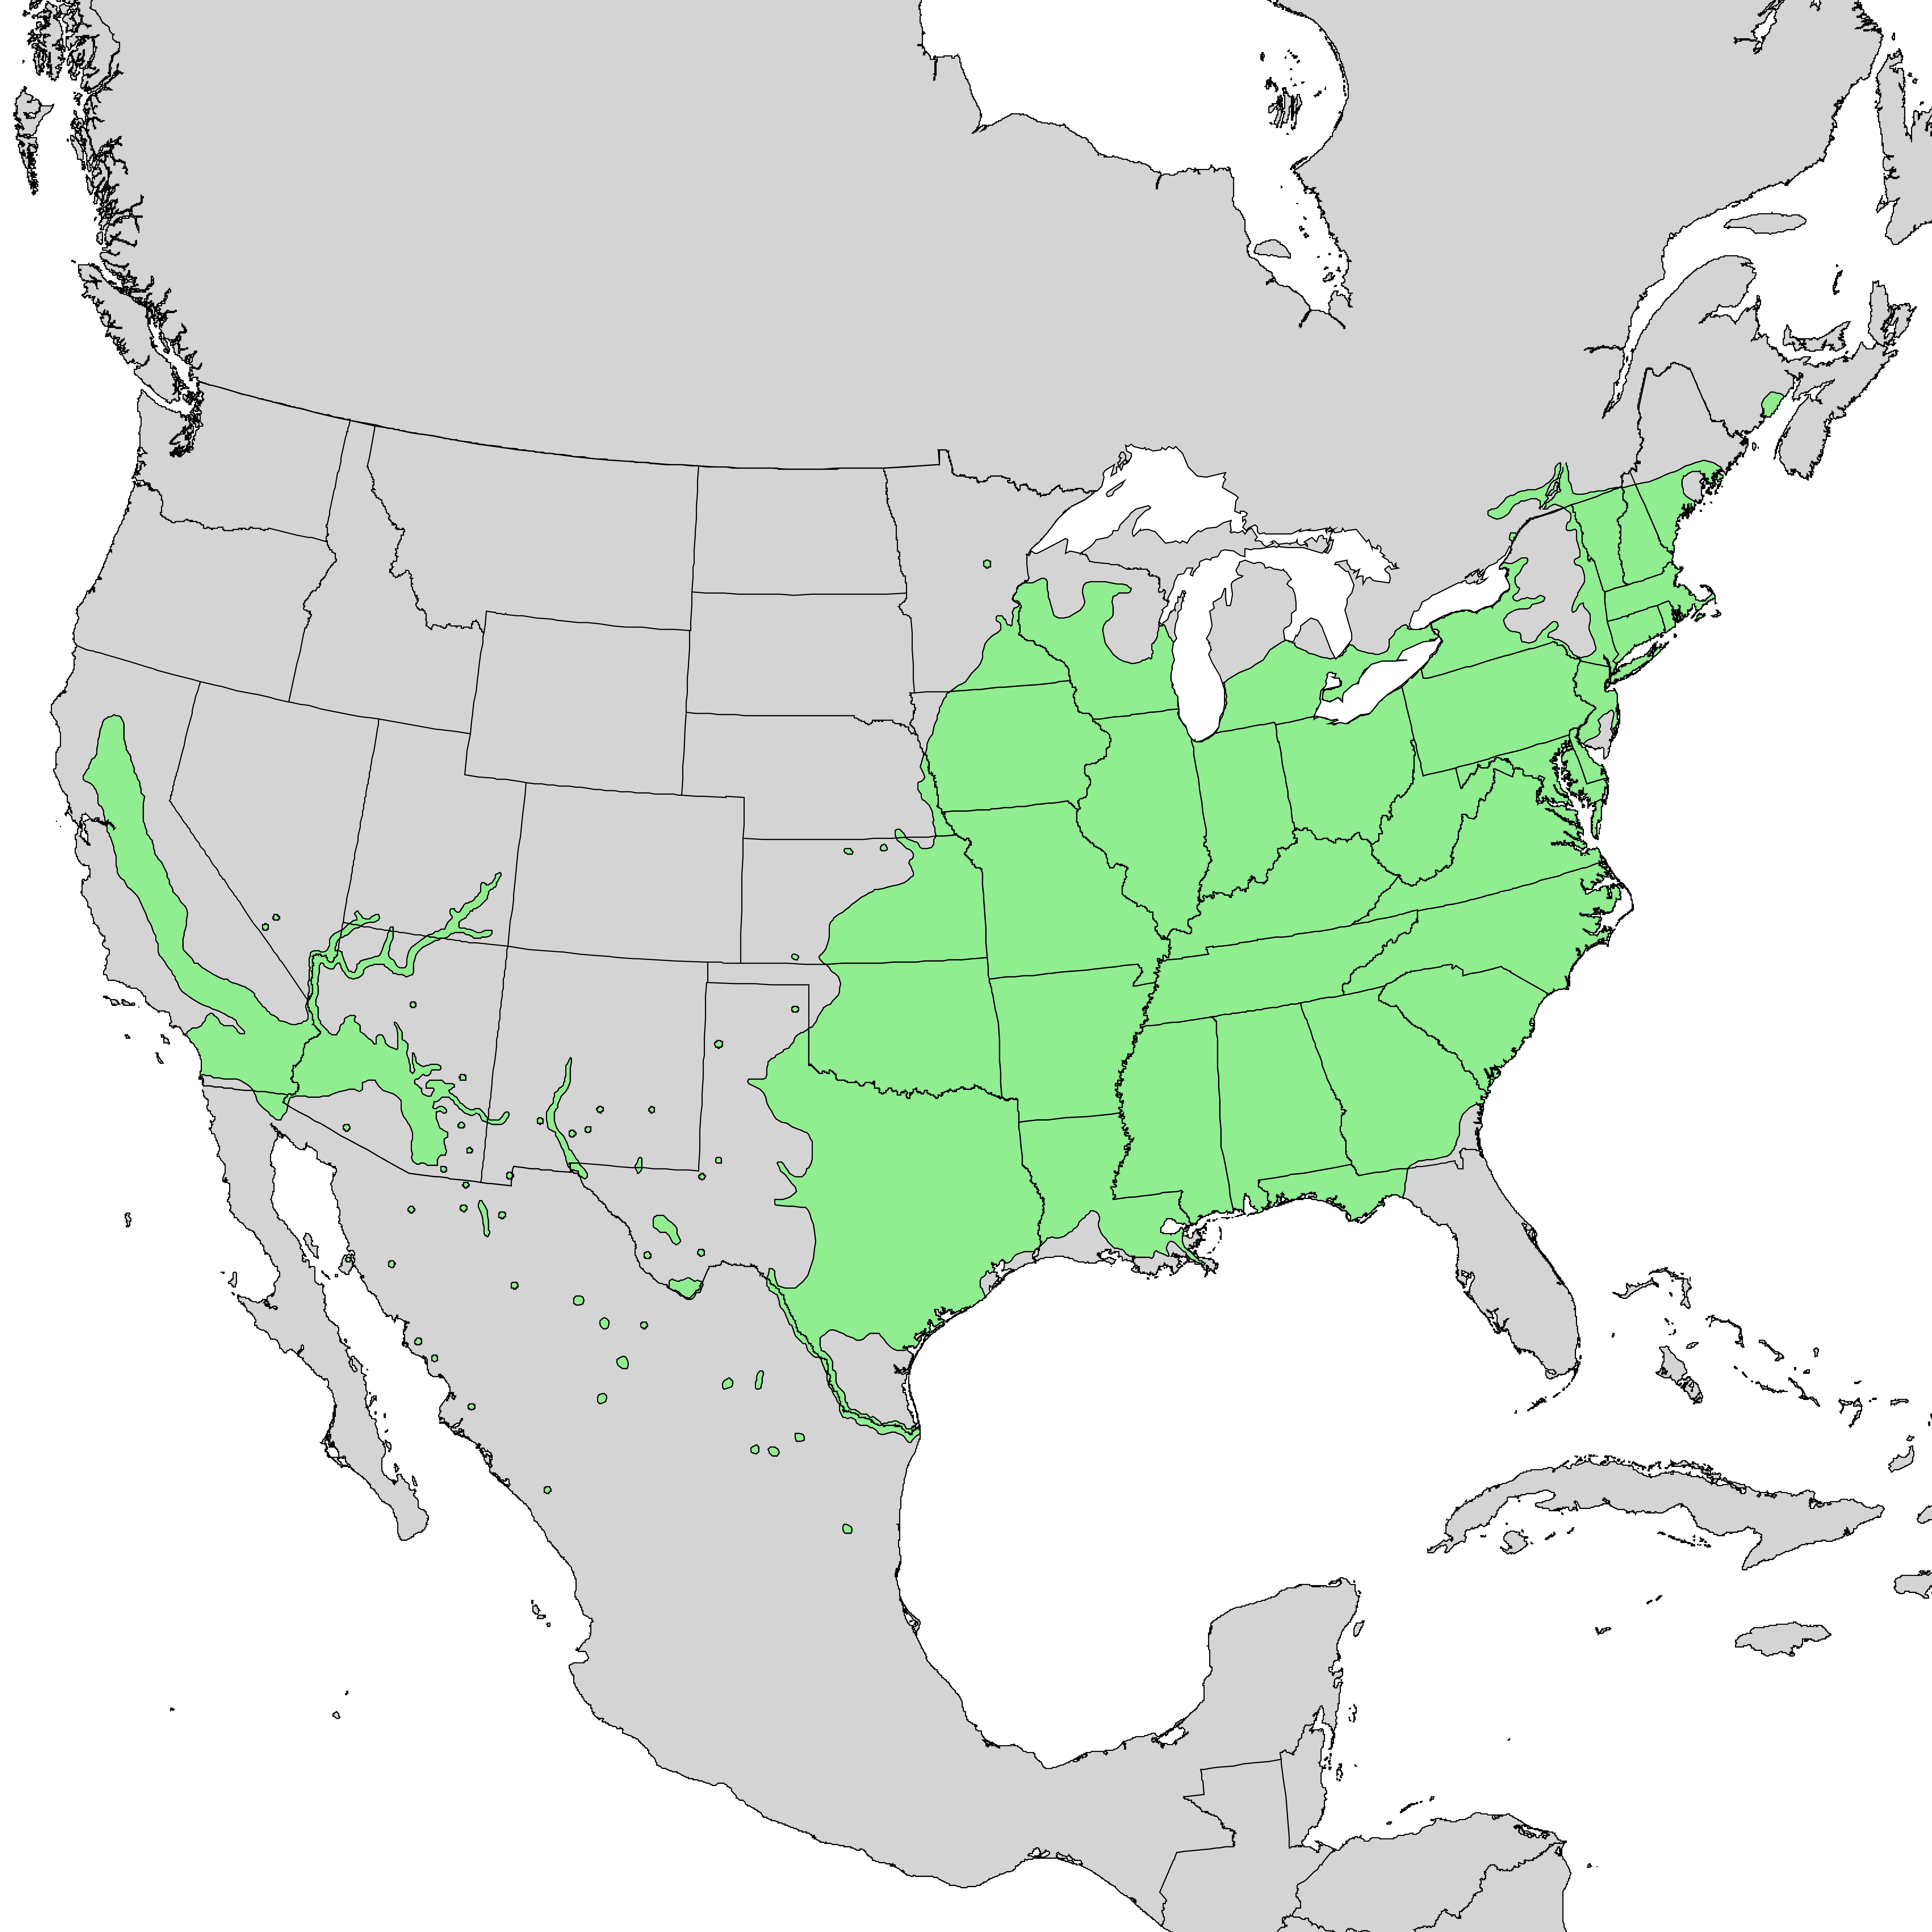 Distribution map for the black willow tree